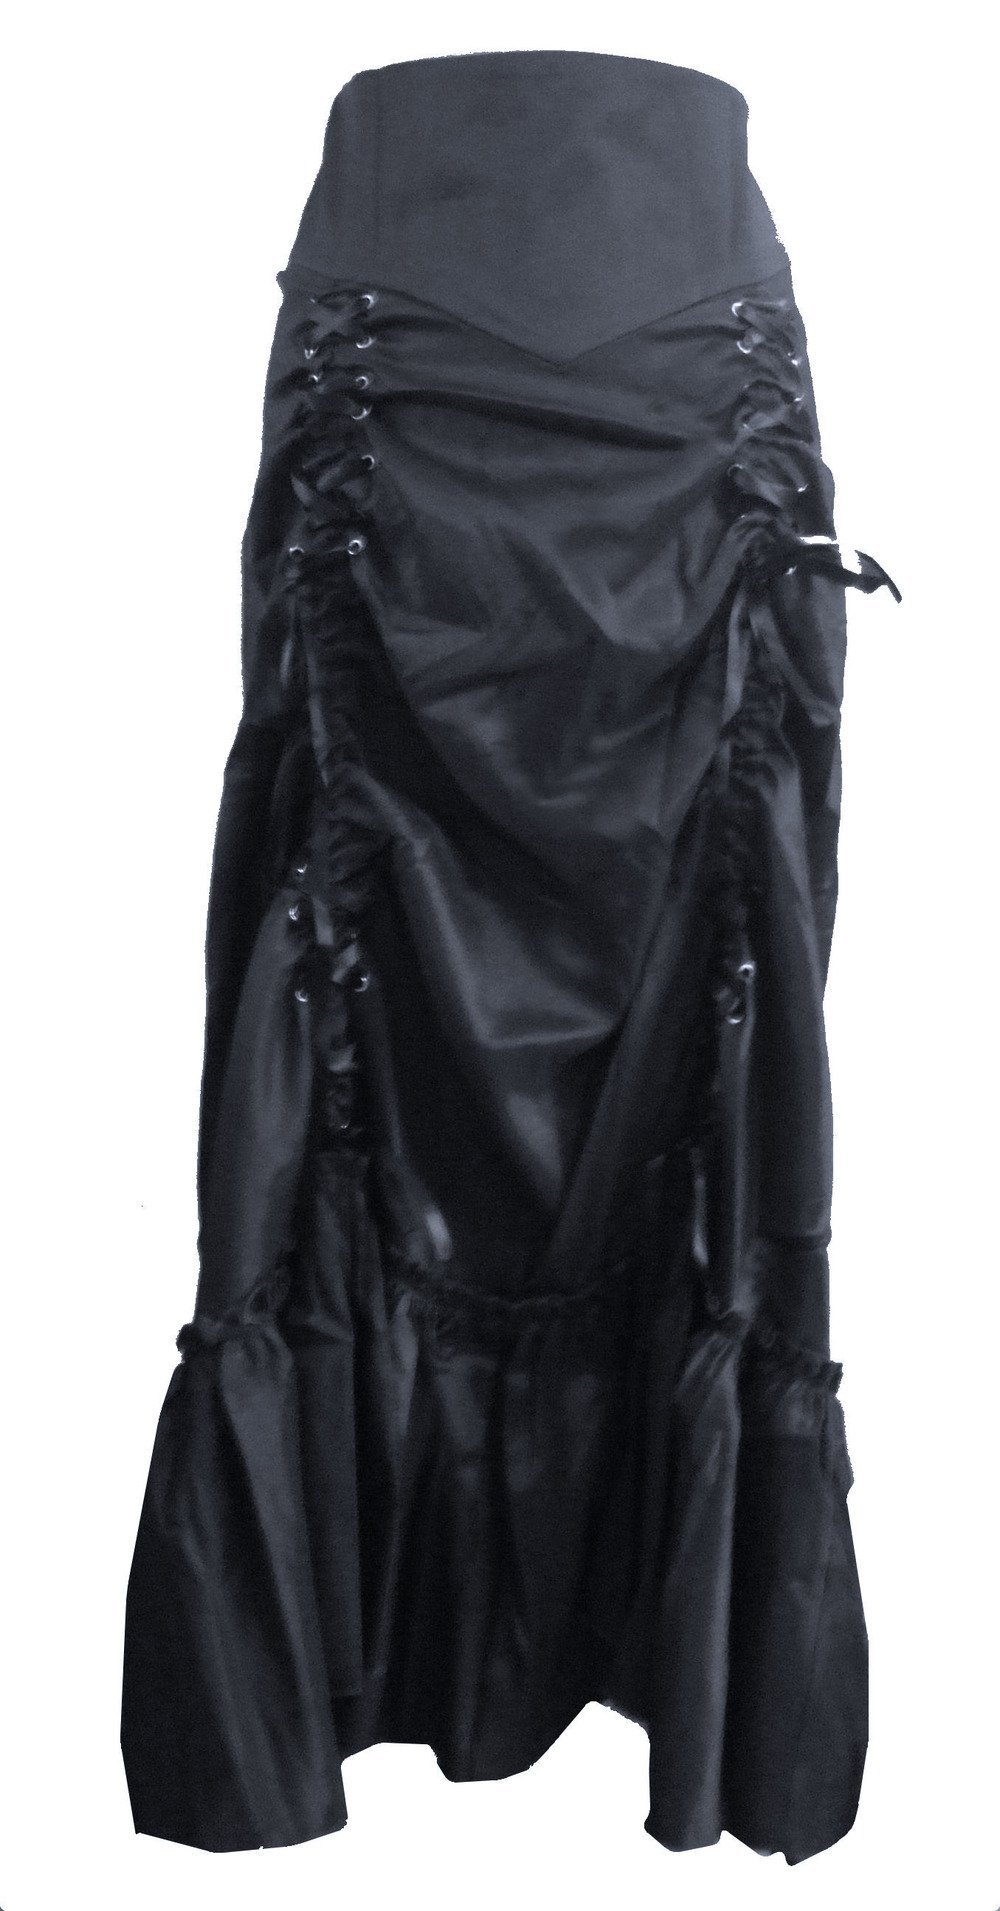 Black - 3 Ways Frieda Long Sateen Corset Skirt - Size 10-12